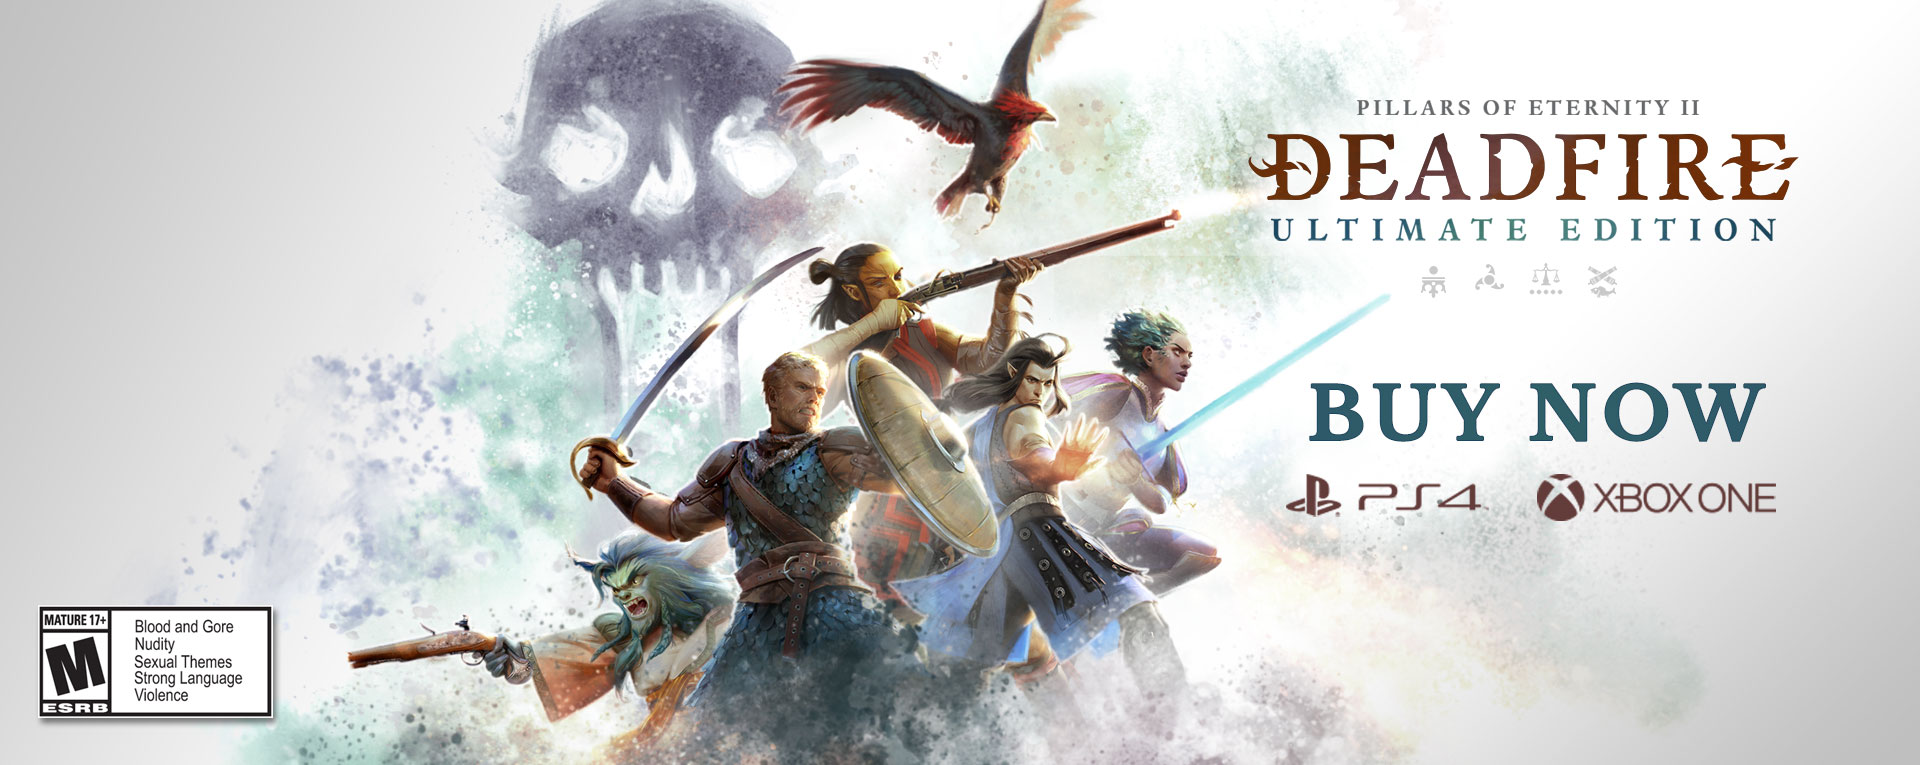 Versus Evil Blog: Pillars of Eternity II: Deadfire – Ultimate Edition Upcoming Patch Notes